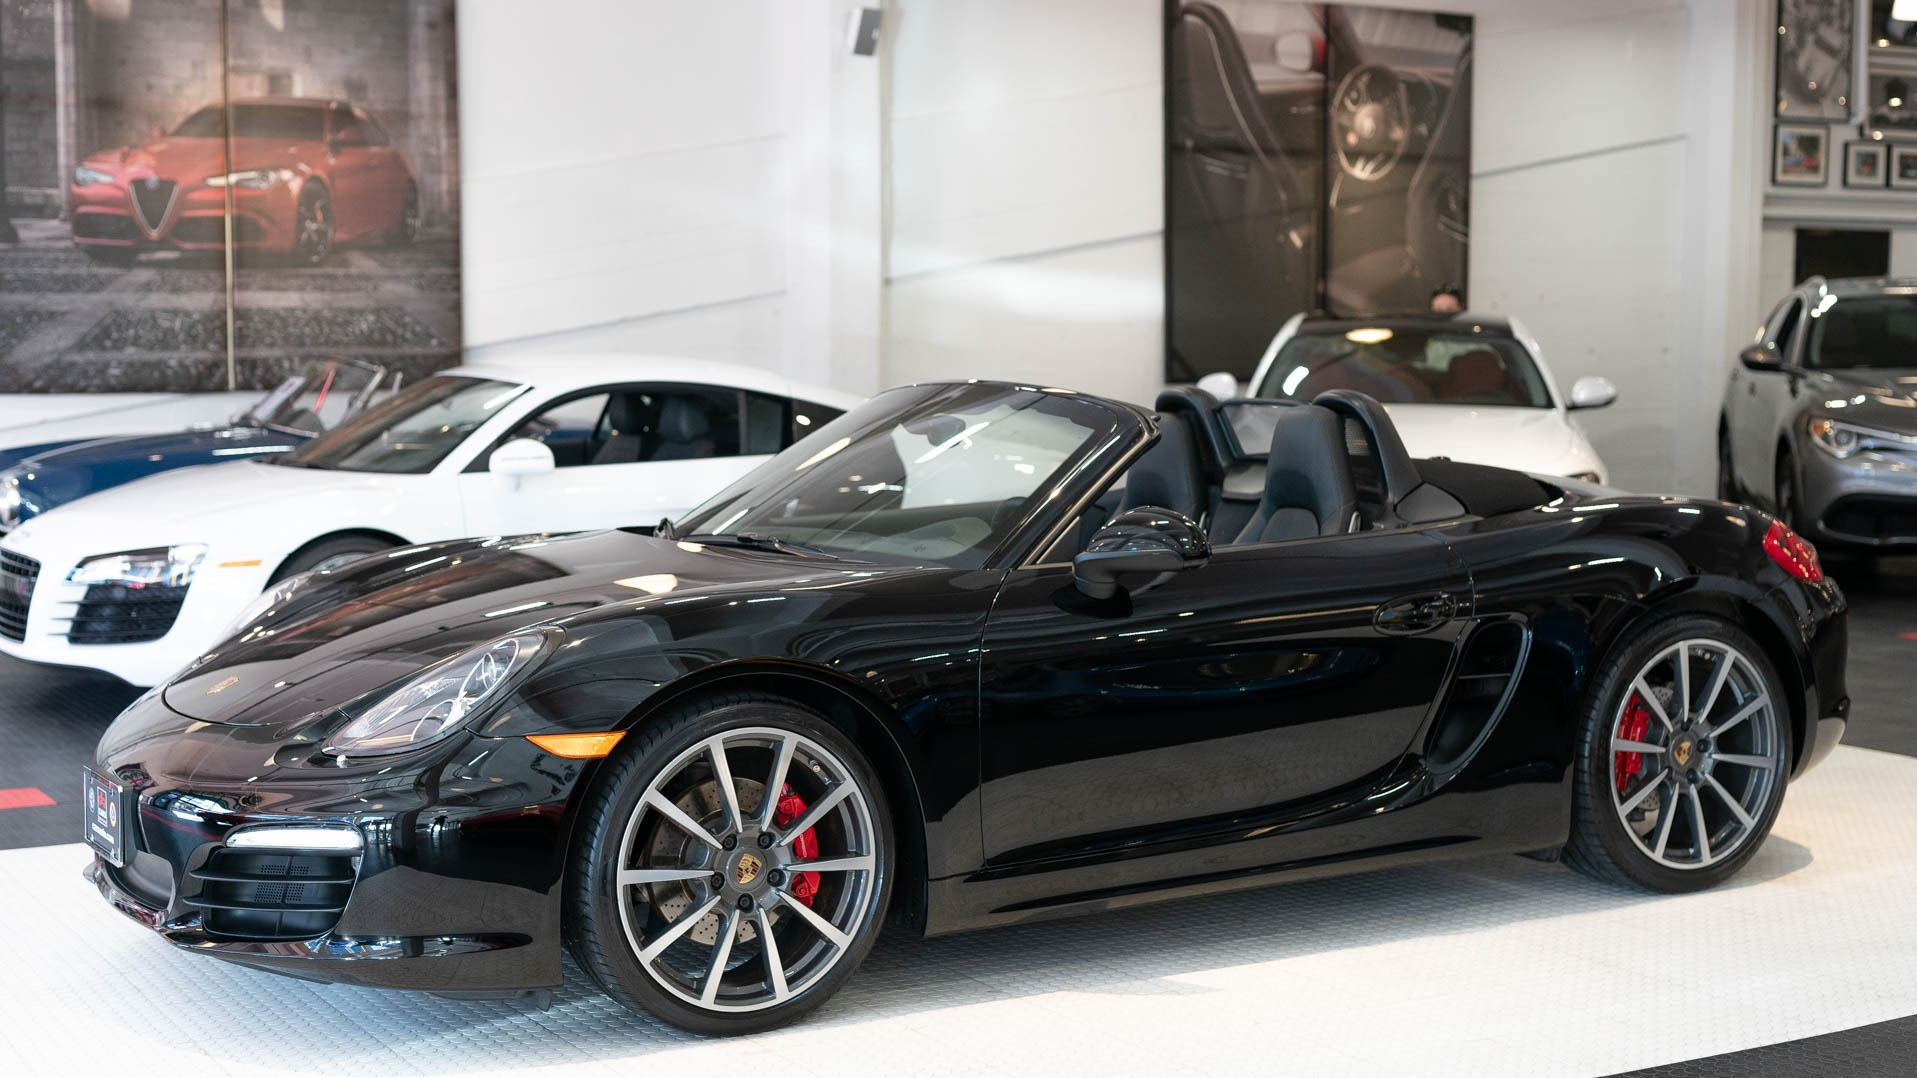 Porsche Boxster Cooling System